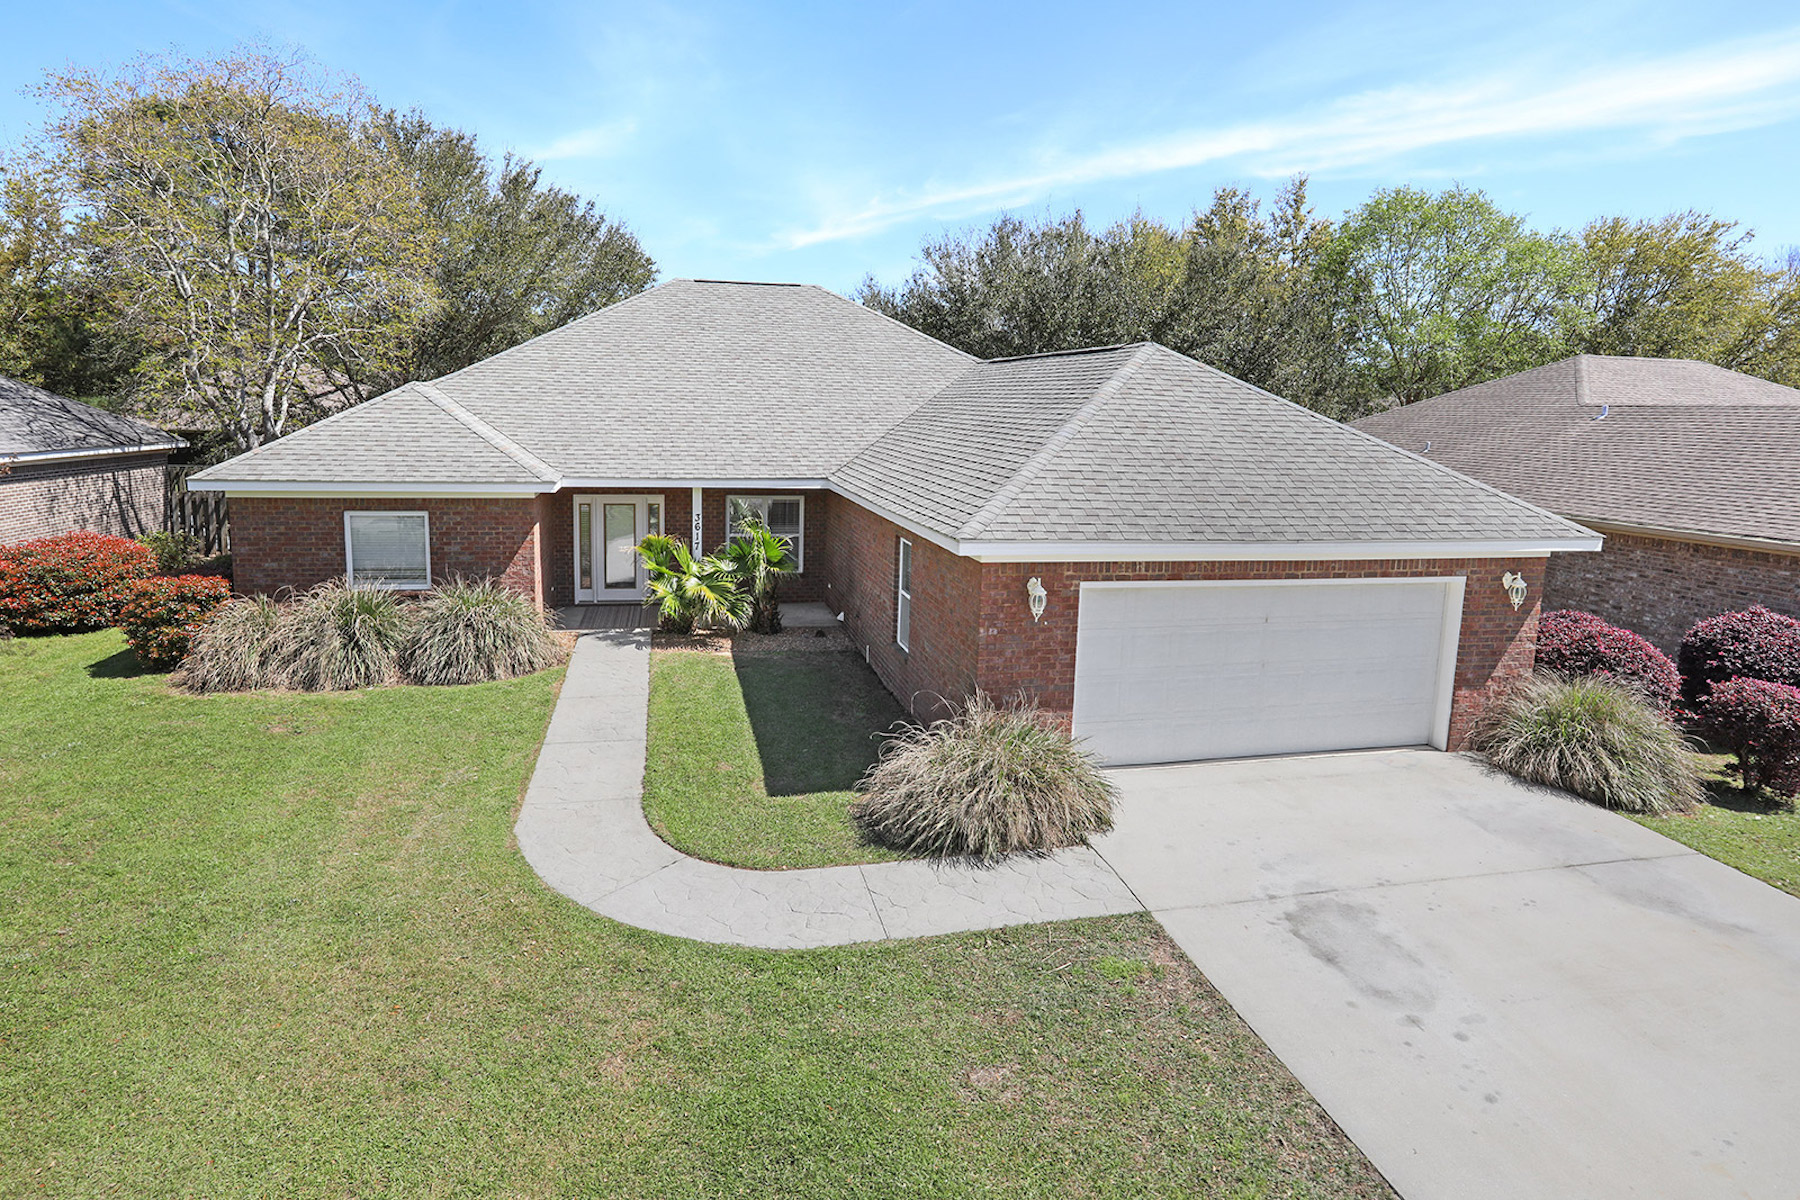 Single Family Home for Sale at Ancient Oaks Gulf Shores 3617 Ancient Oaks Circle, Gulf Shores, Alabama, 36542 United States